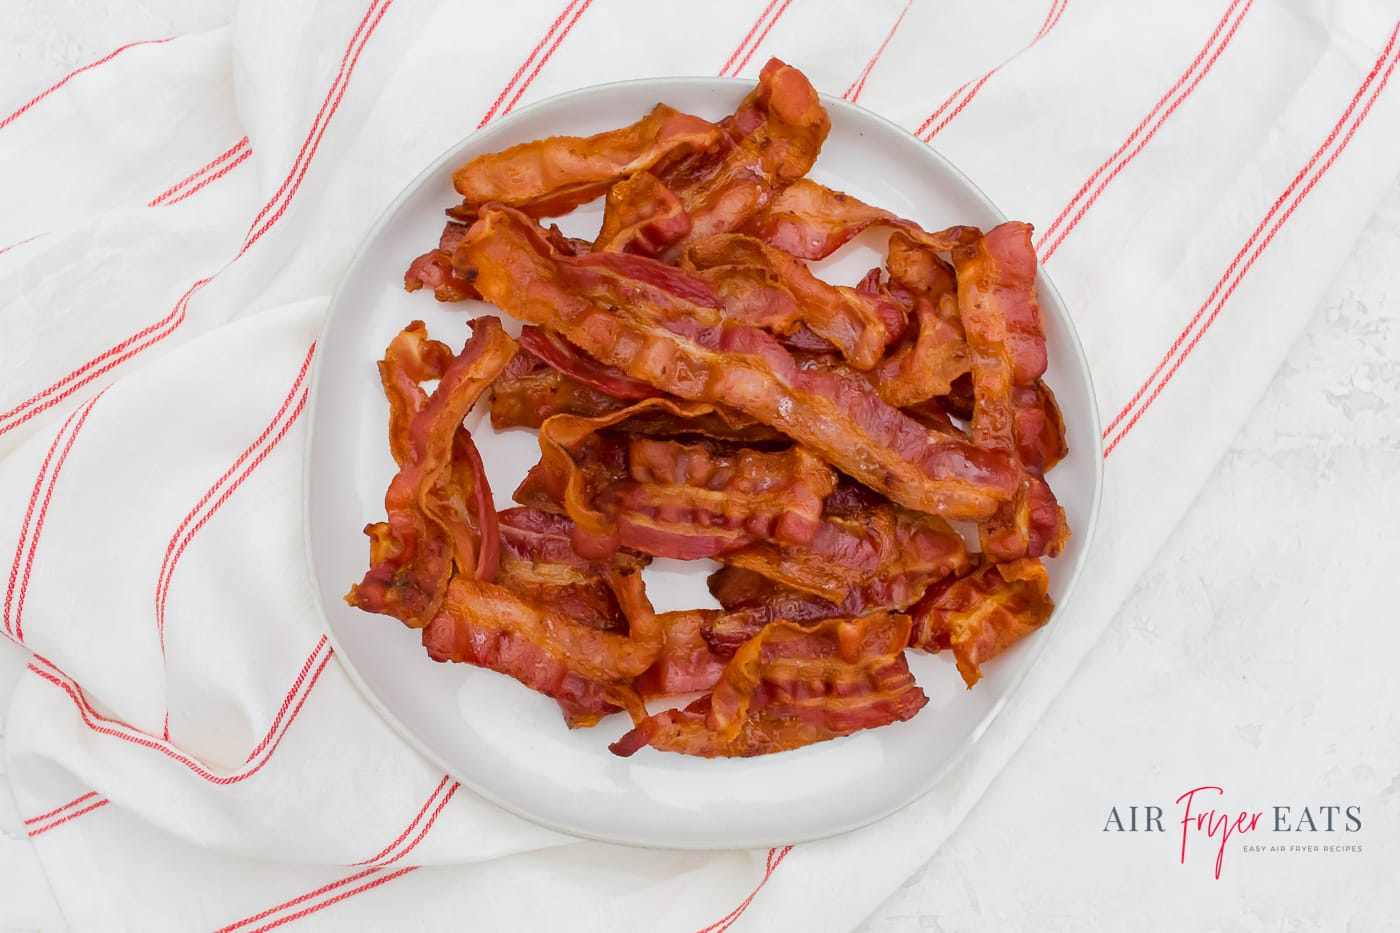 a large pile of crispy brown bacon pieces on a white plate over a striped red and white towel